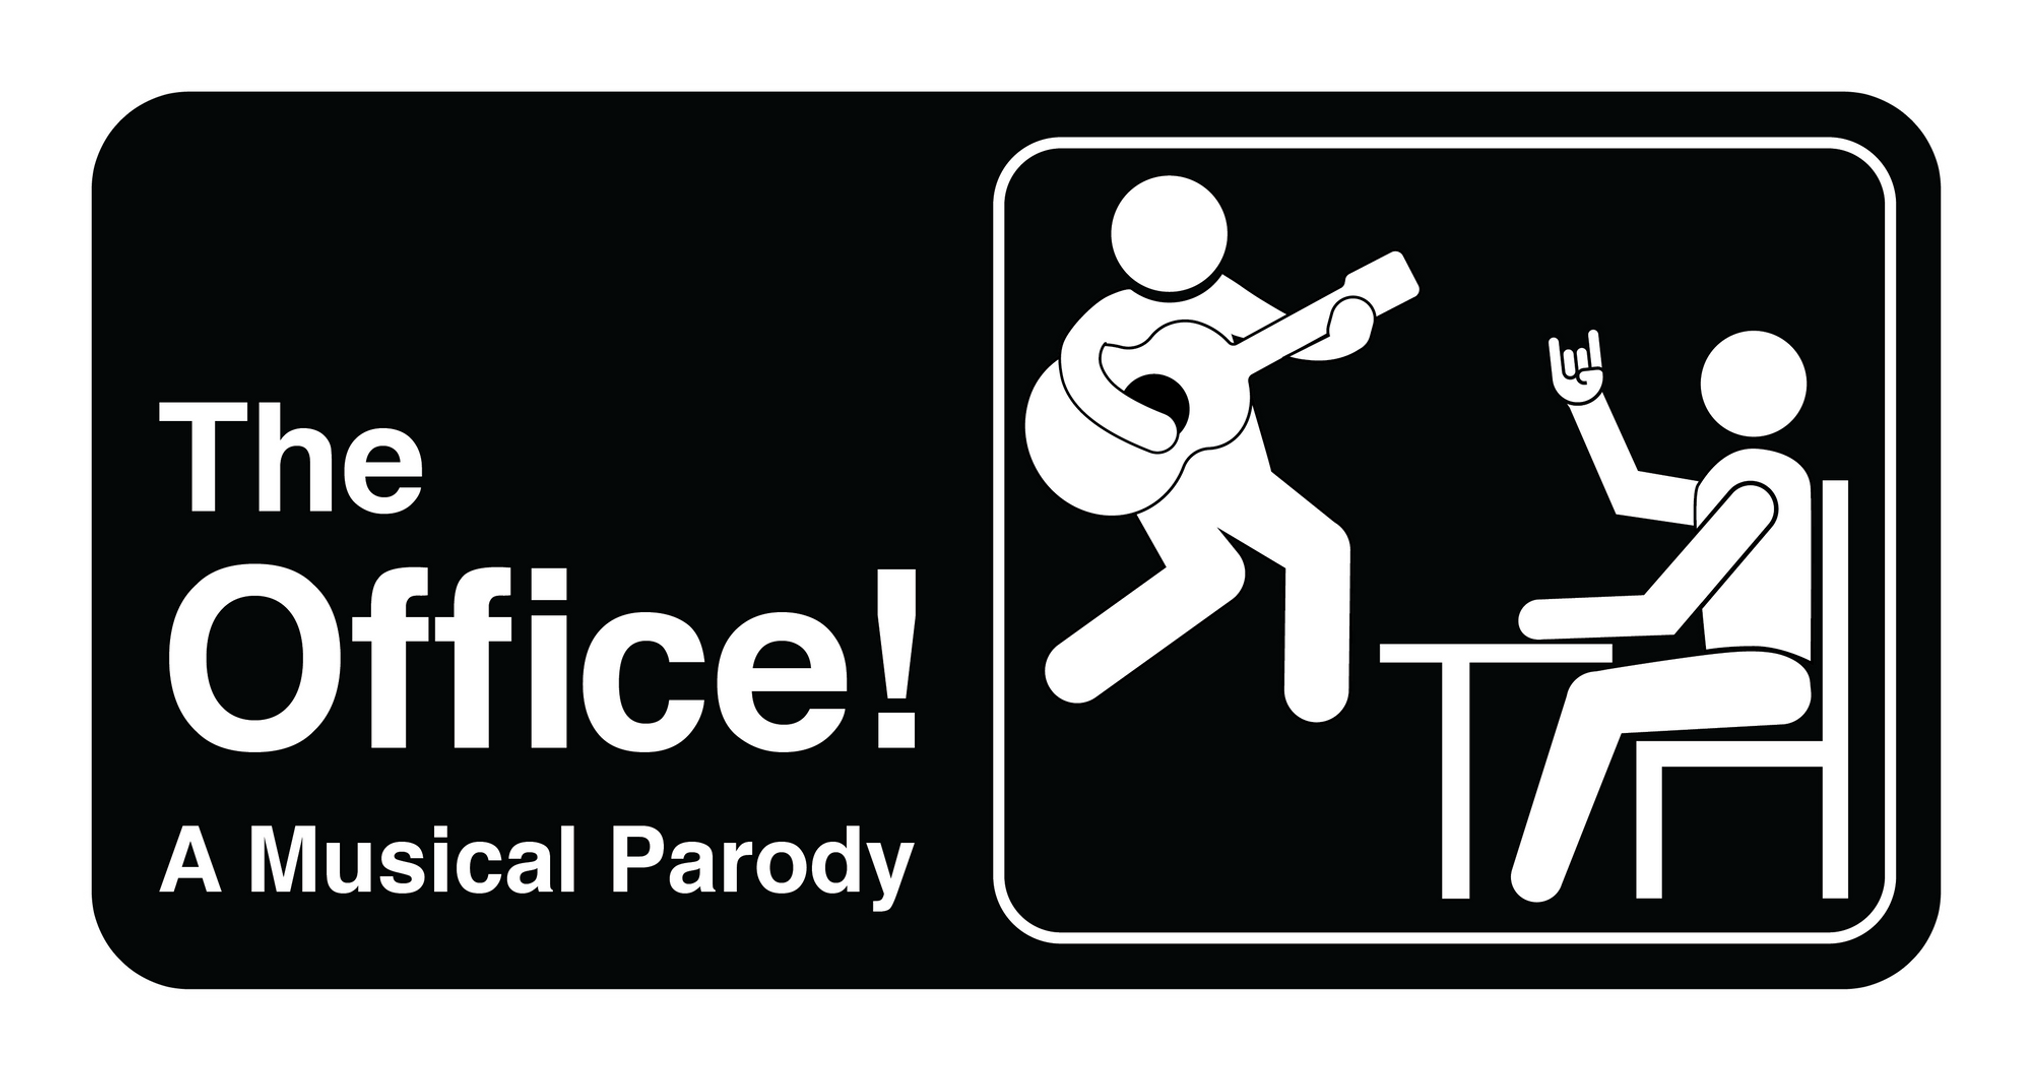 The Office! A Musical Parody Logo